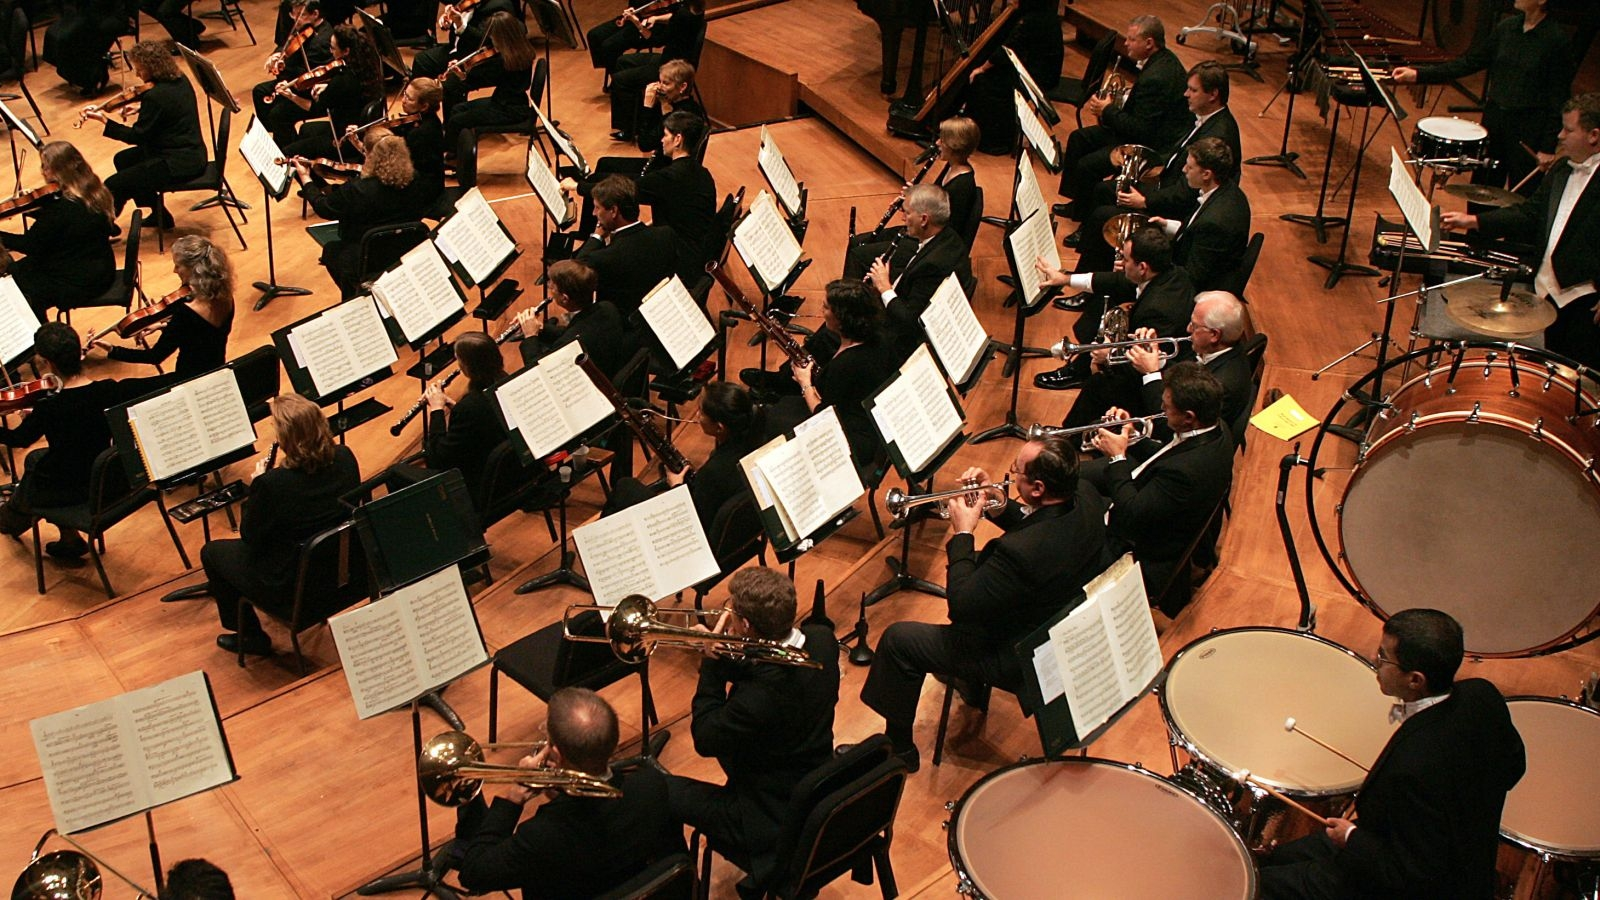 The Jacksonville Symphony - Lead by Music Director Courtney Lewis, the Jacksonville Symphony performs a variety of works in both classical and family formats.View in Directory